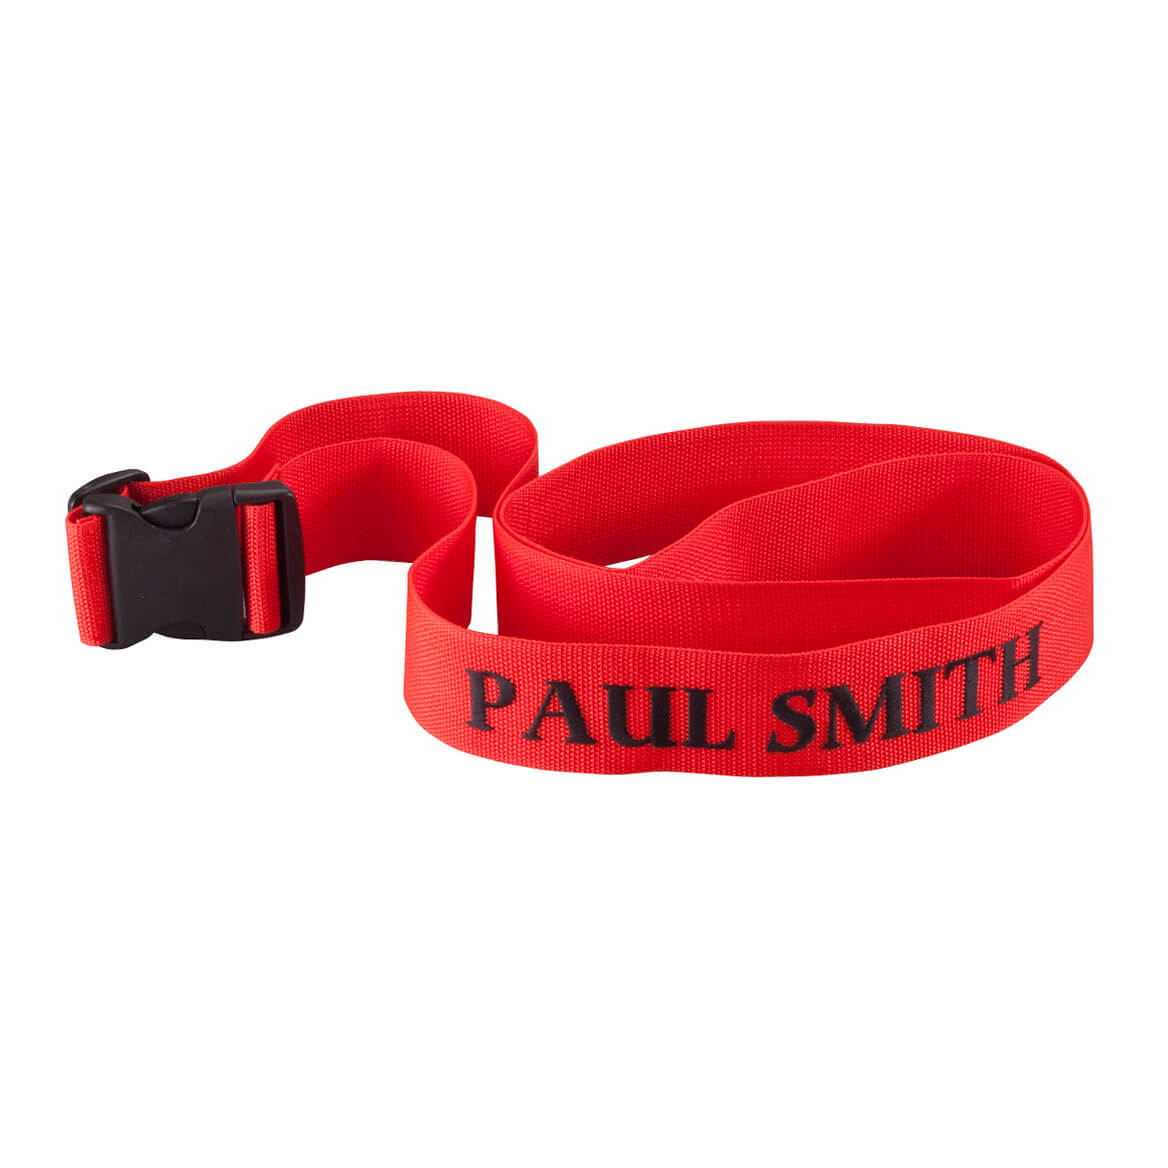 Personalized Red Luggage Strap-355336